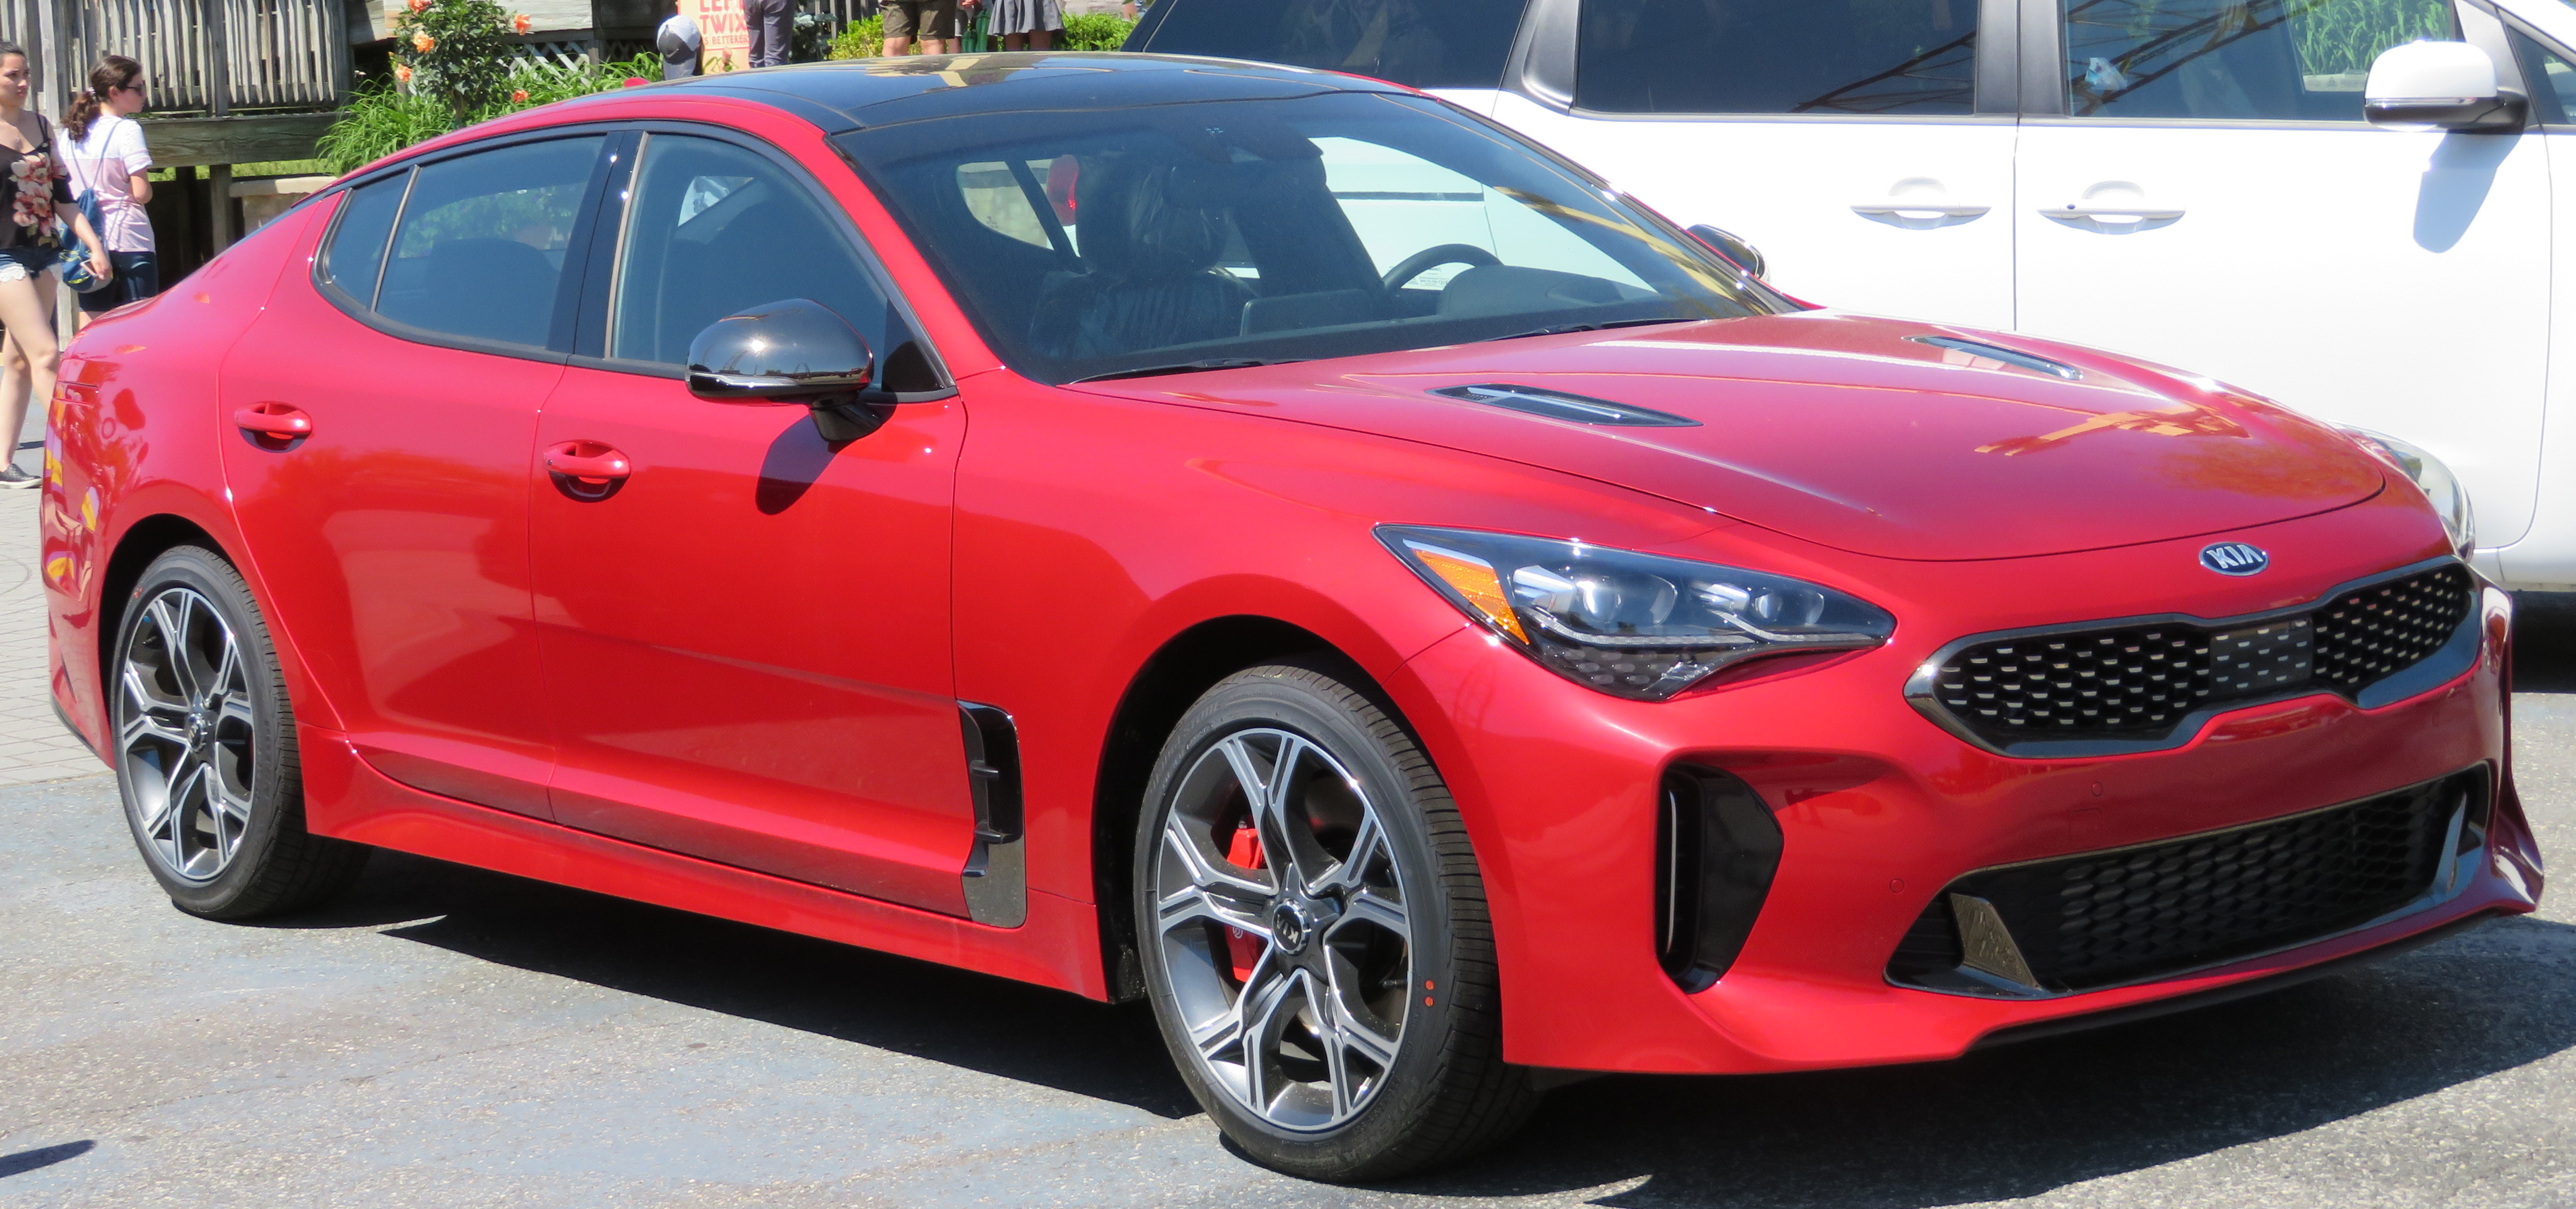 2018_Kia_Stinger_GT2_3.3L_AWD_in_Hichroma_red_front_(2)_5.23.18.jpg